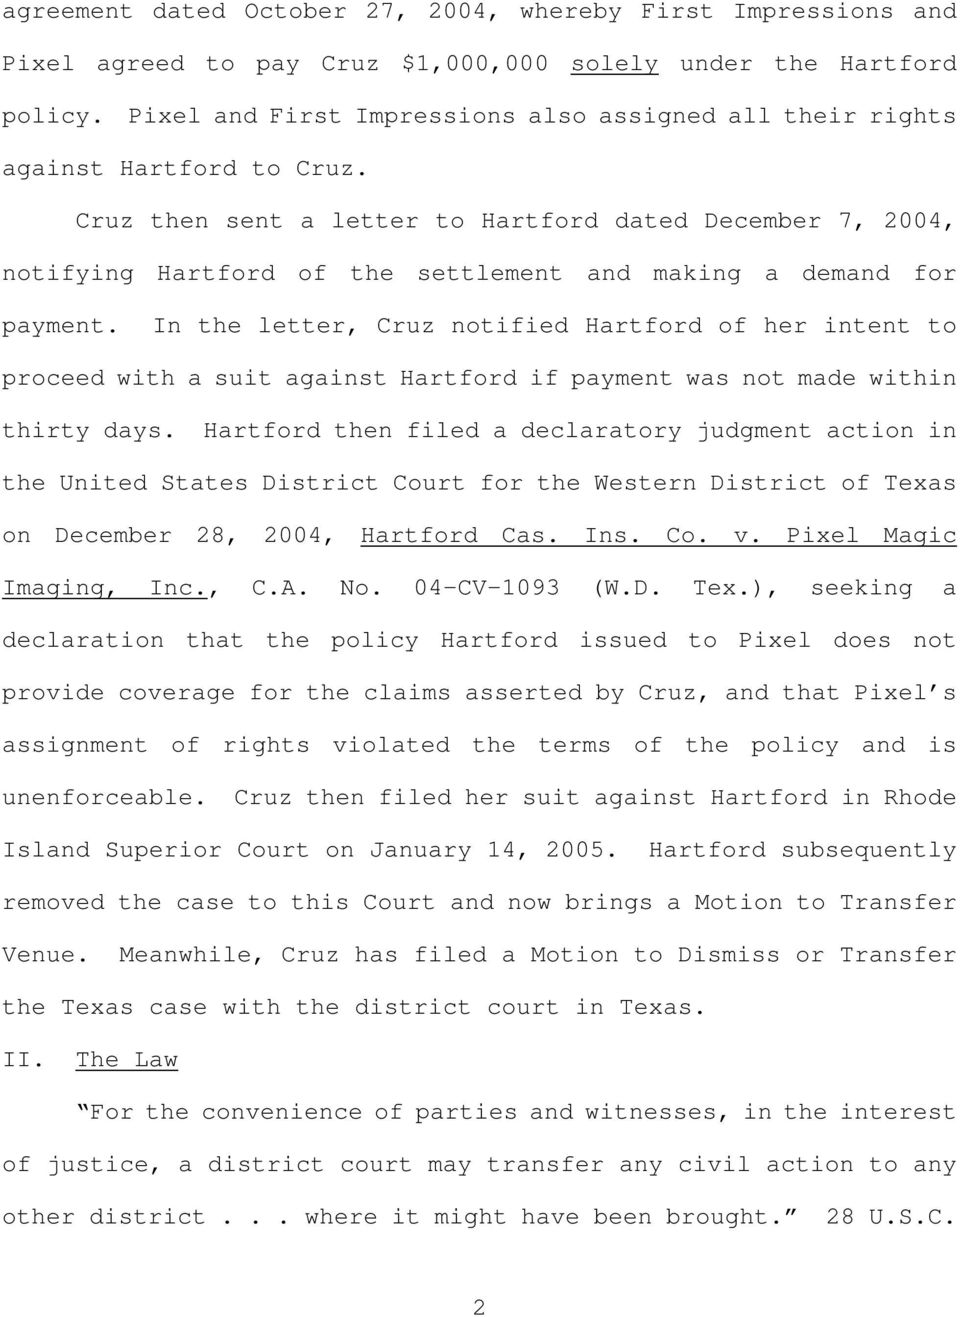 Cruz then sent a letter to Hartford dated December 7, 2004, notifying Hartford of the settlement and making a demand for payment.